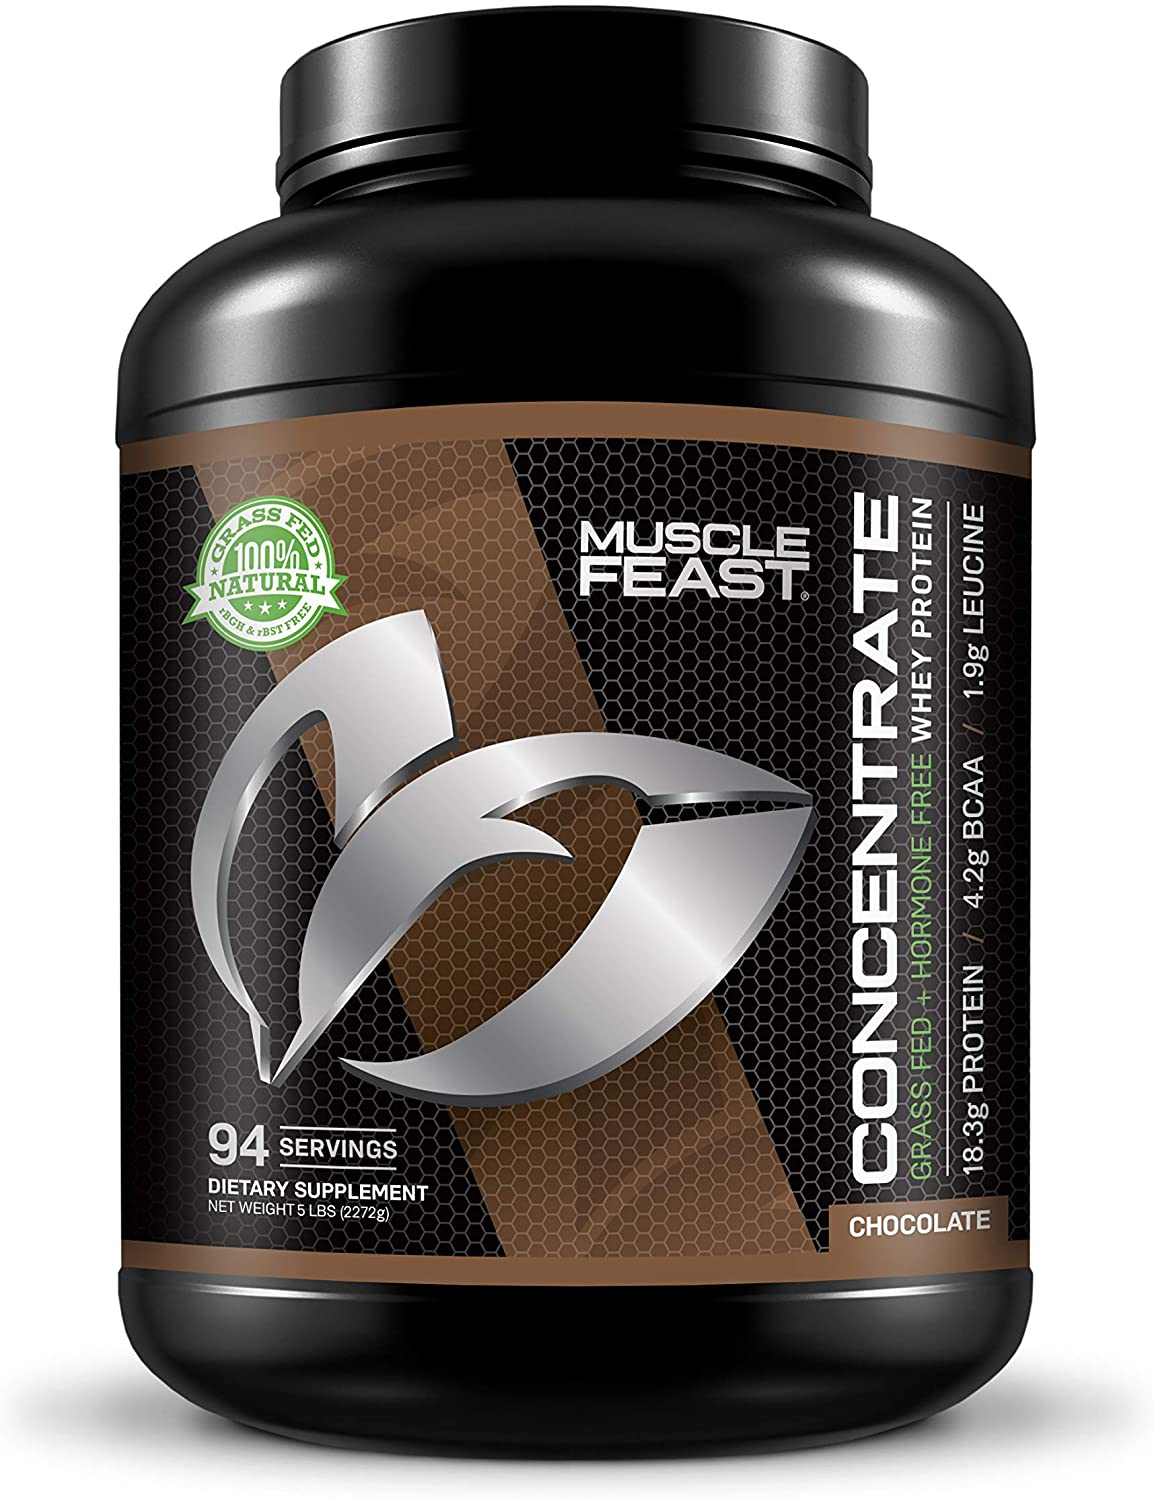 Muscle Feast Hormone Free Grass Fed Chocolate Whey Protein Concentrate